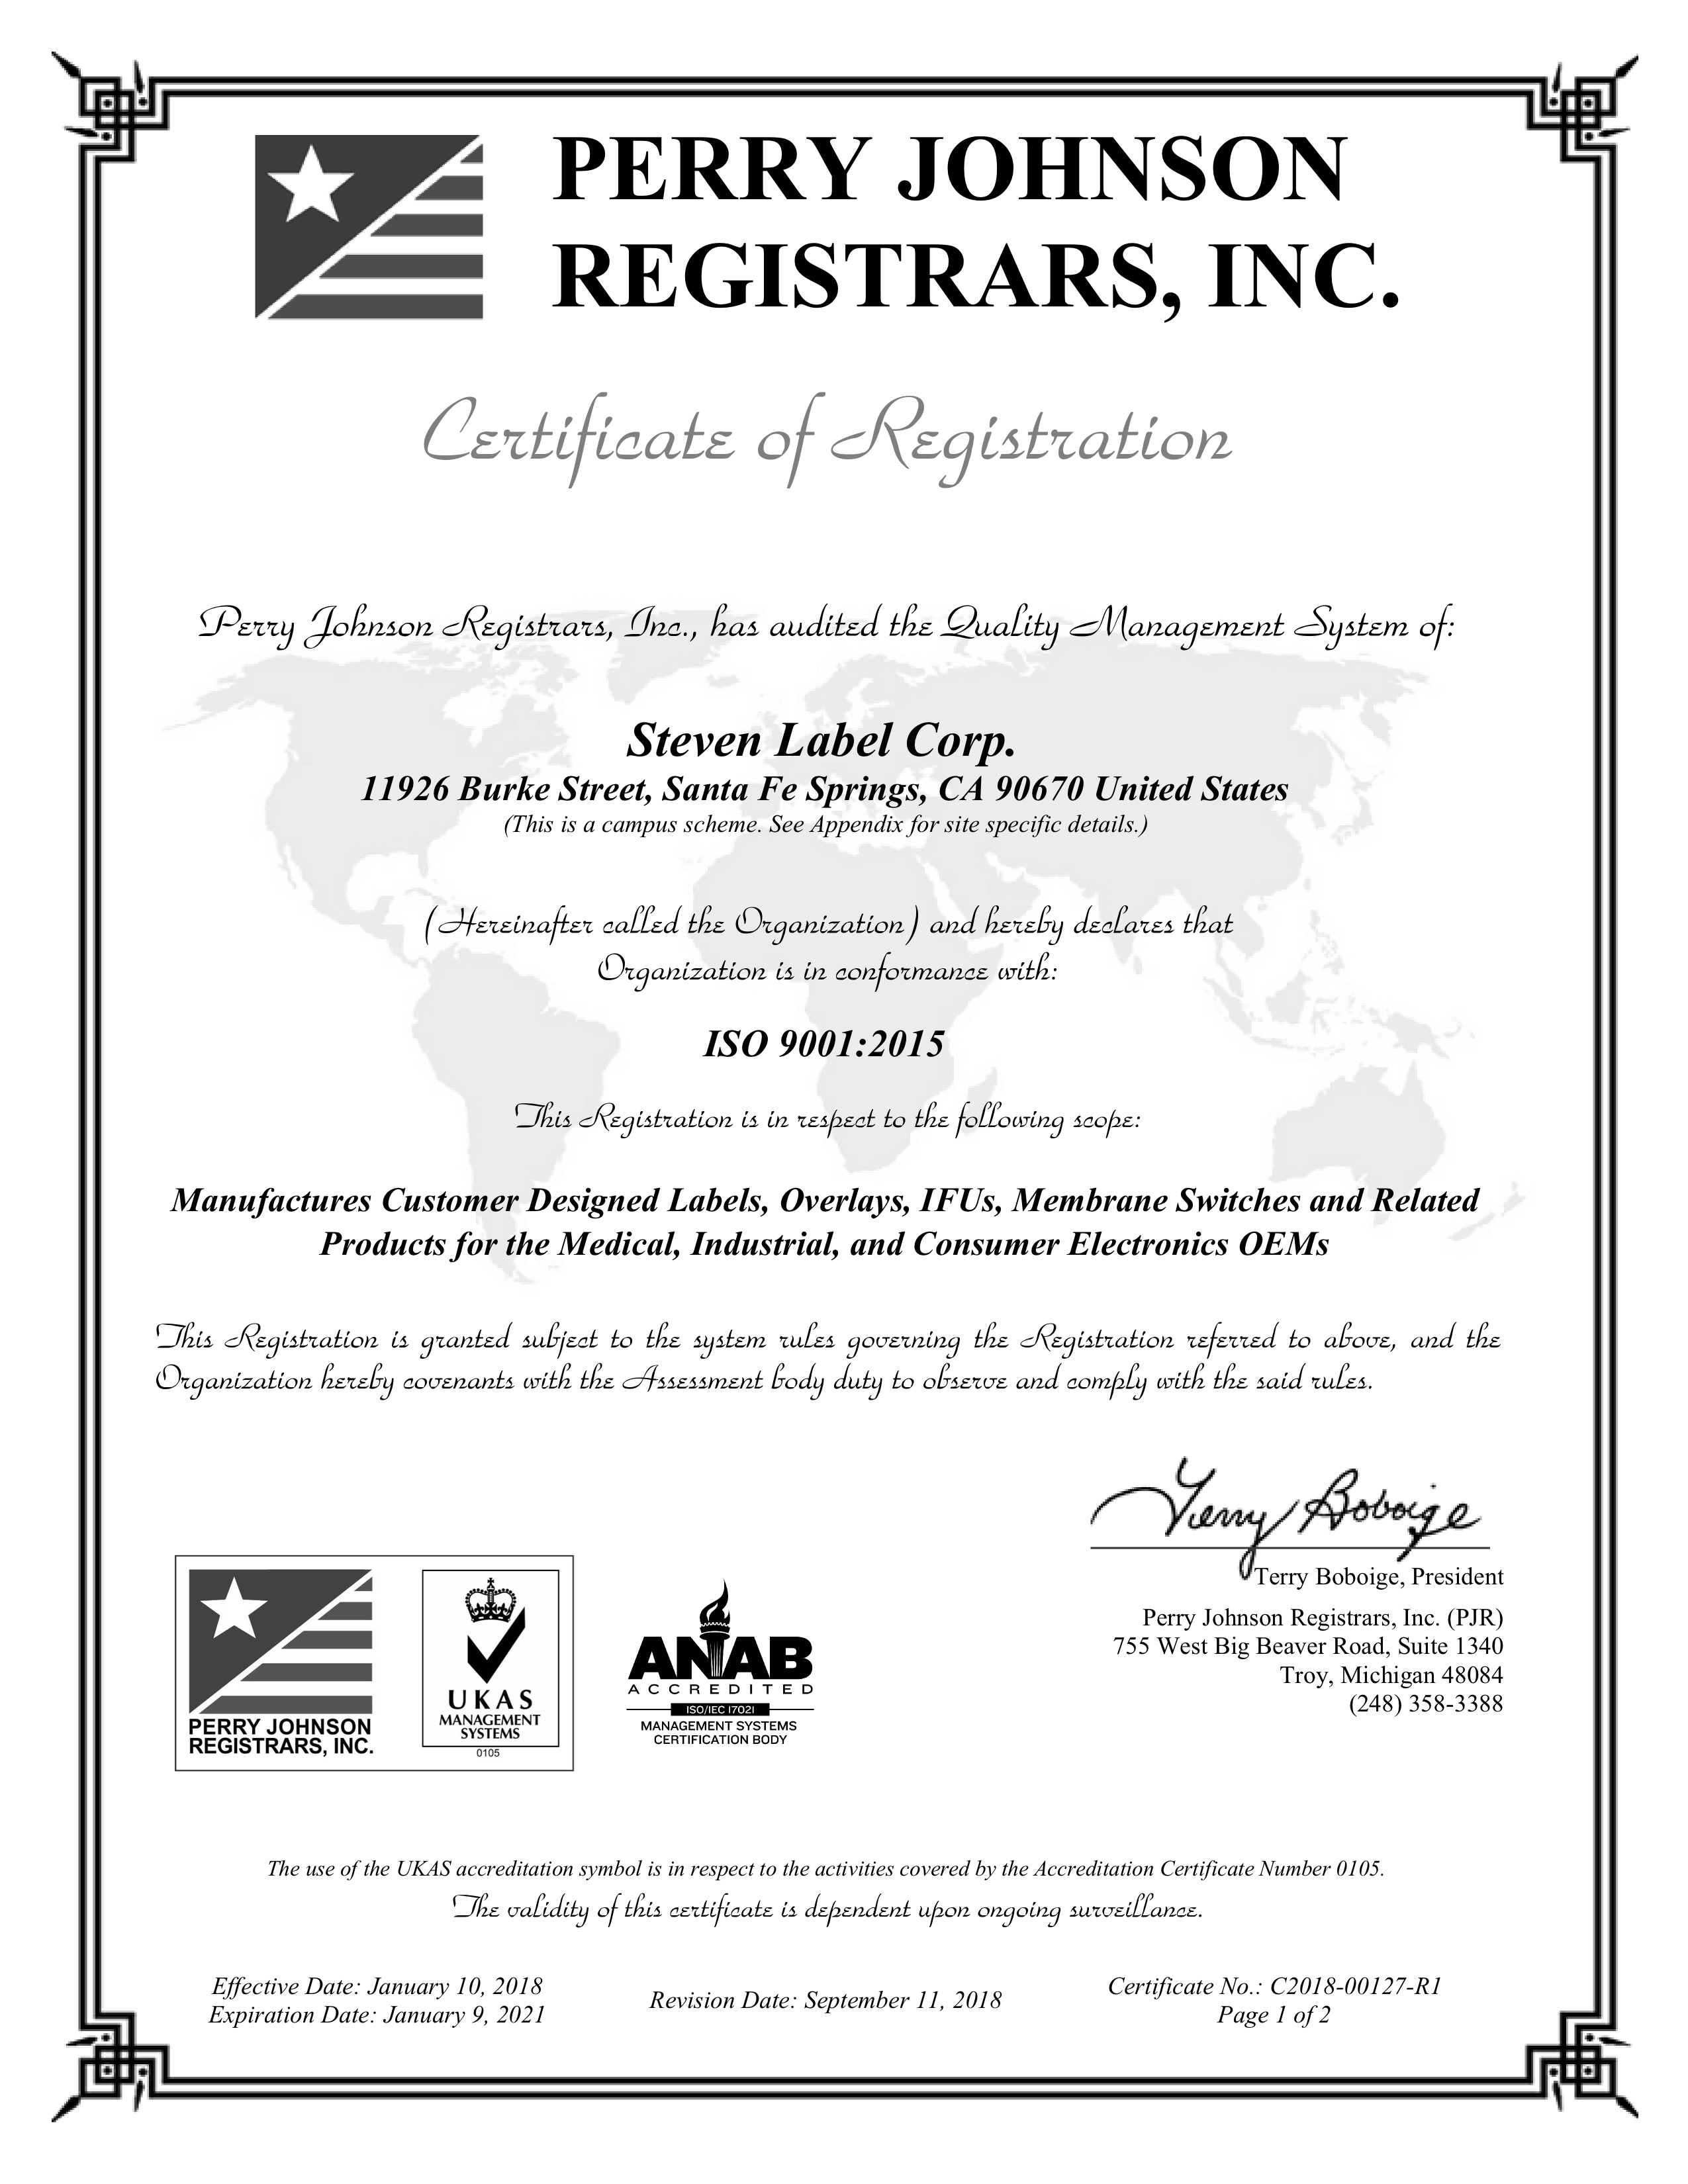 Steven Label achieves ISO 9001:2015 Certification!